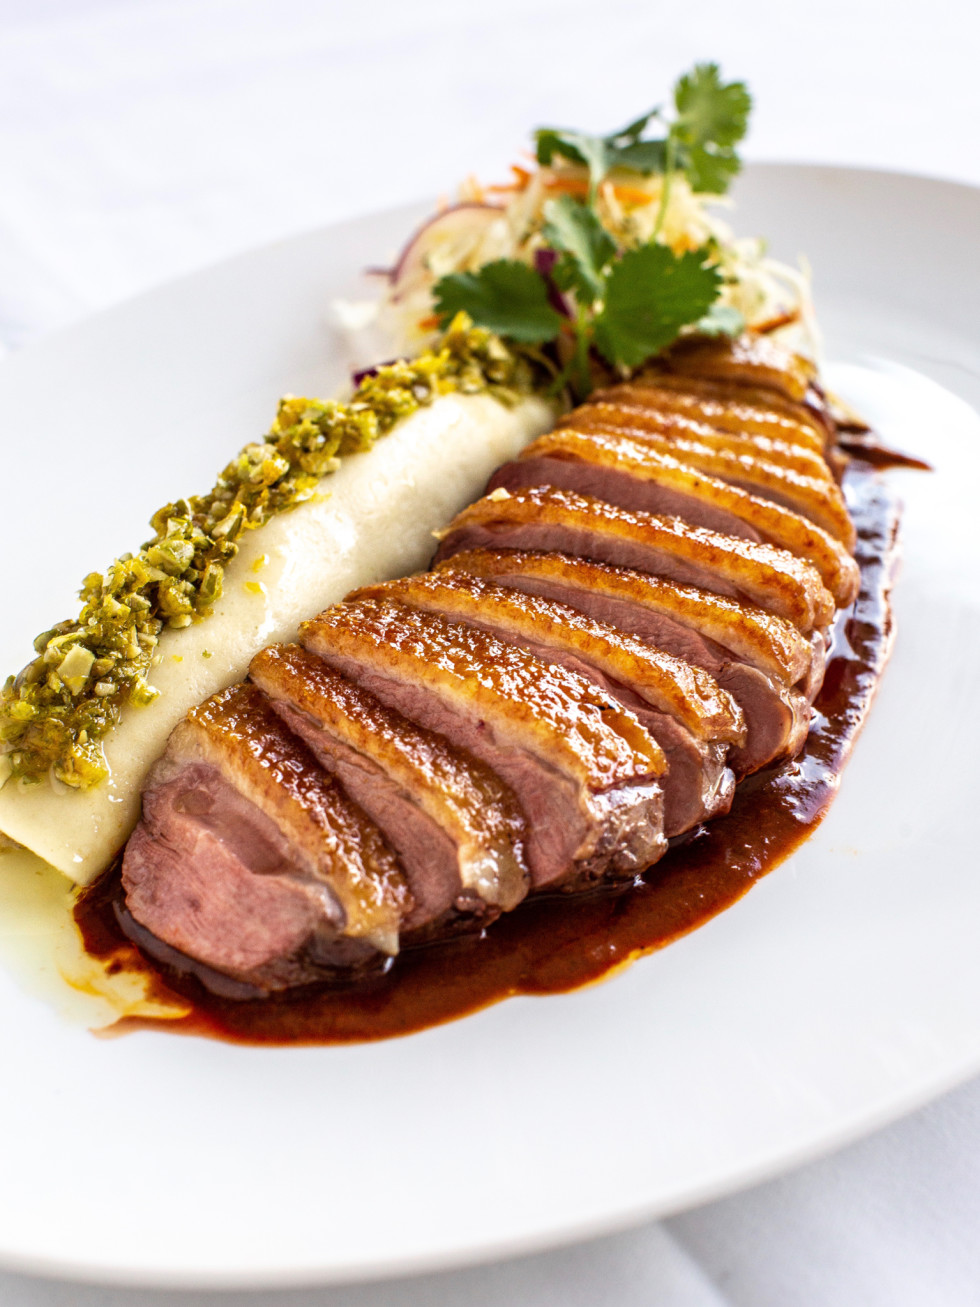 The Annie Cafe roasted duck breast with cocoa mole